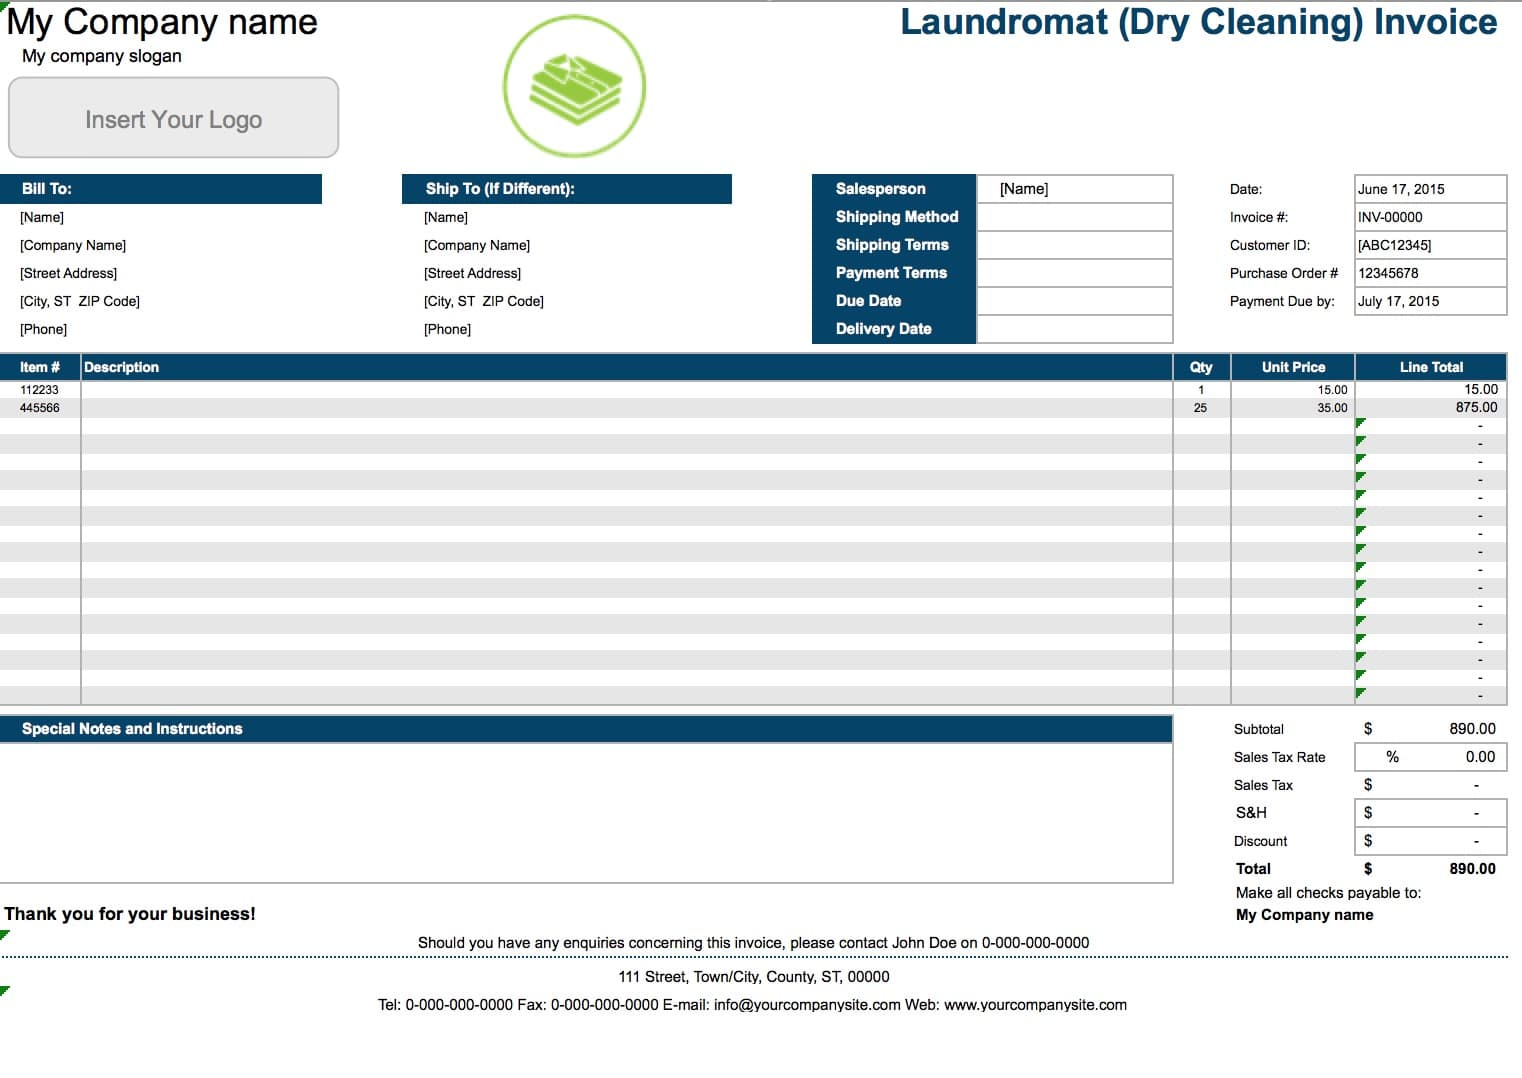 Free Laundromat Dry Cleaning Invoice Template Excel – Cleaning Service Receipt